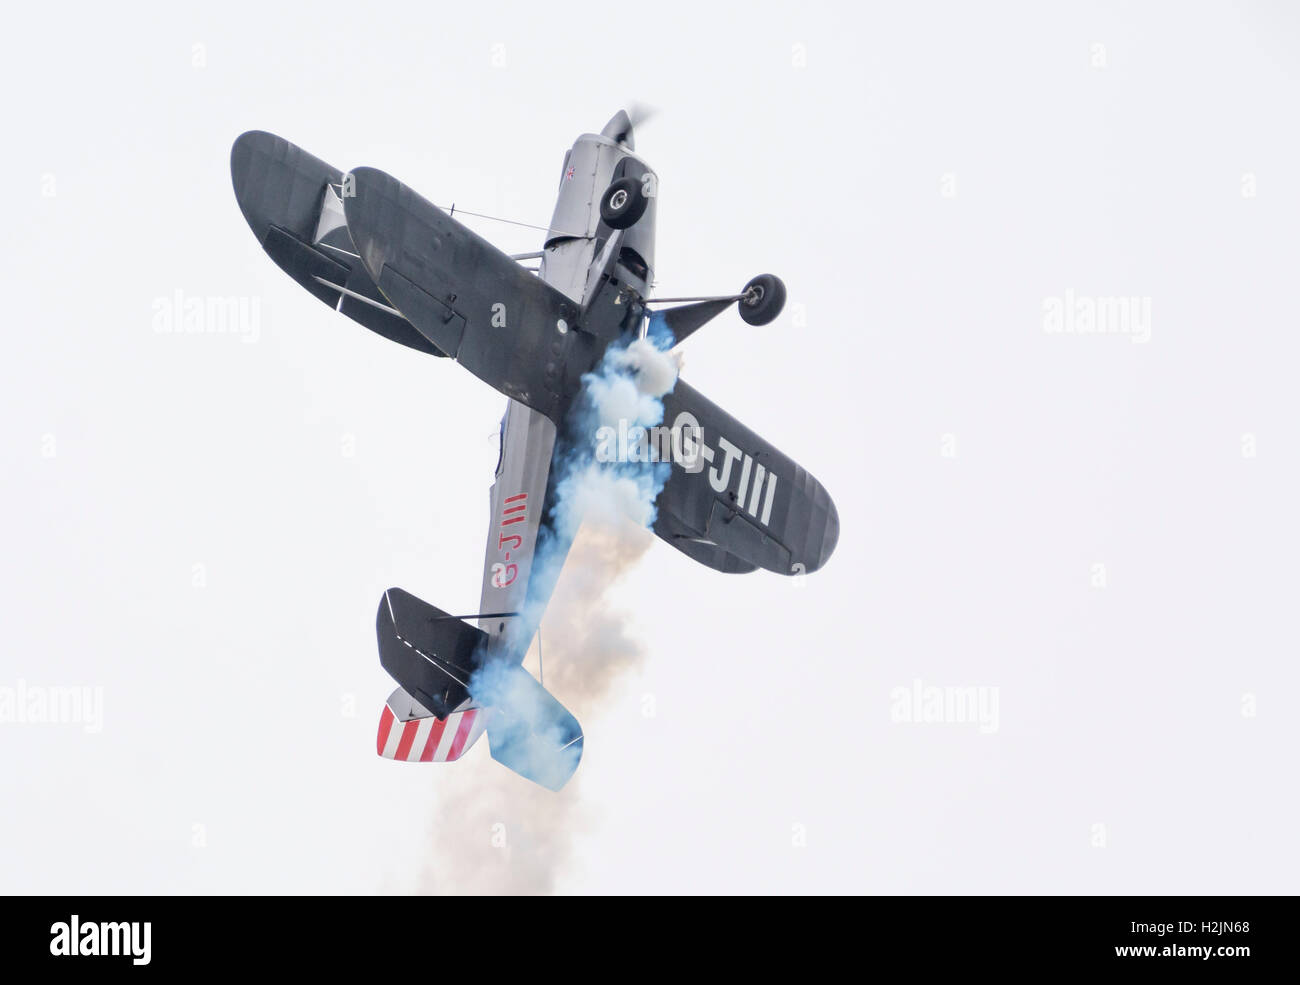 Biplane climbing with smoke coming from it. Aircraft is G-J111 single seater single propeller biplane. - Stock Image